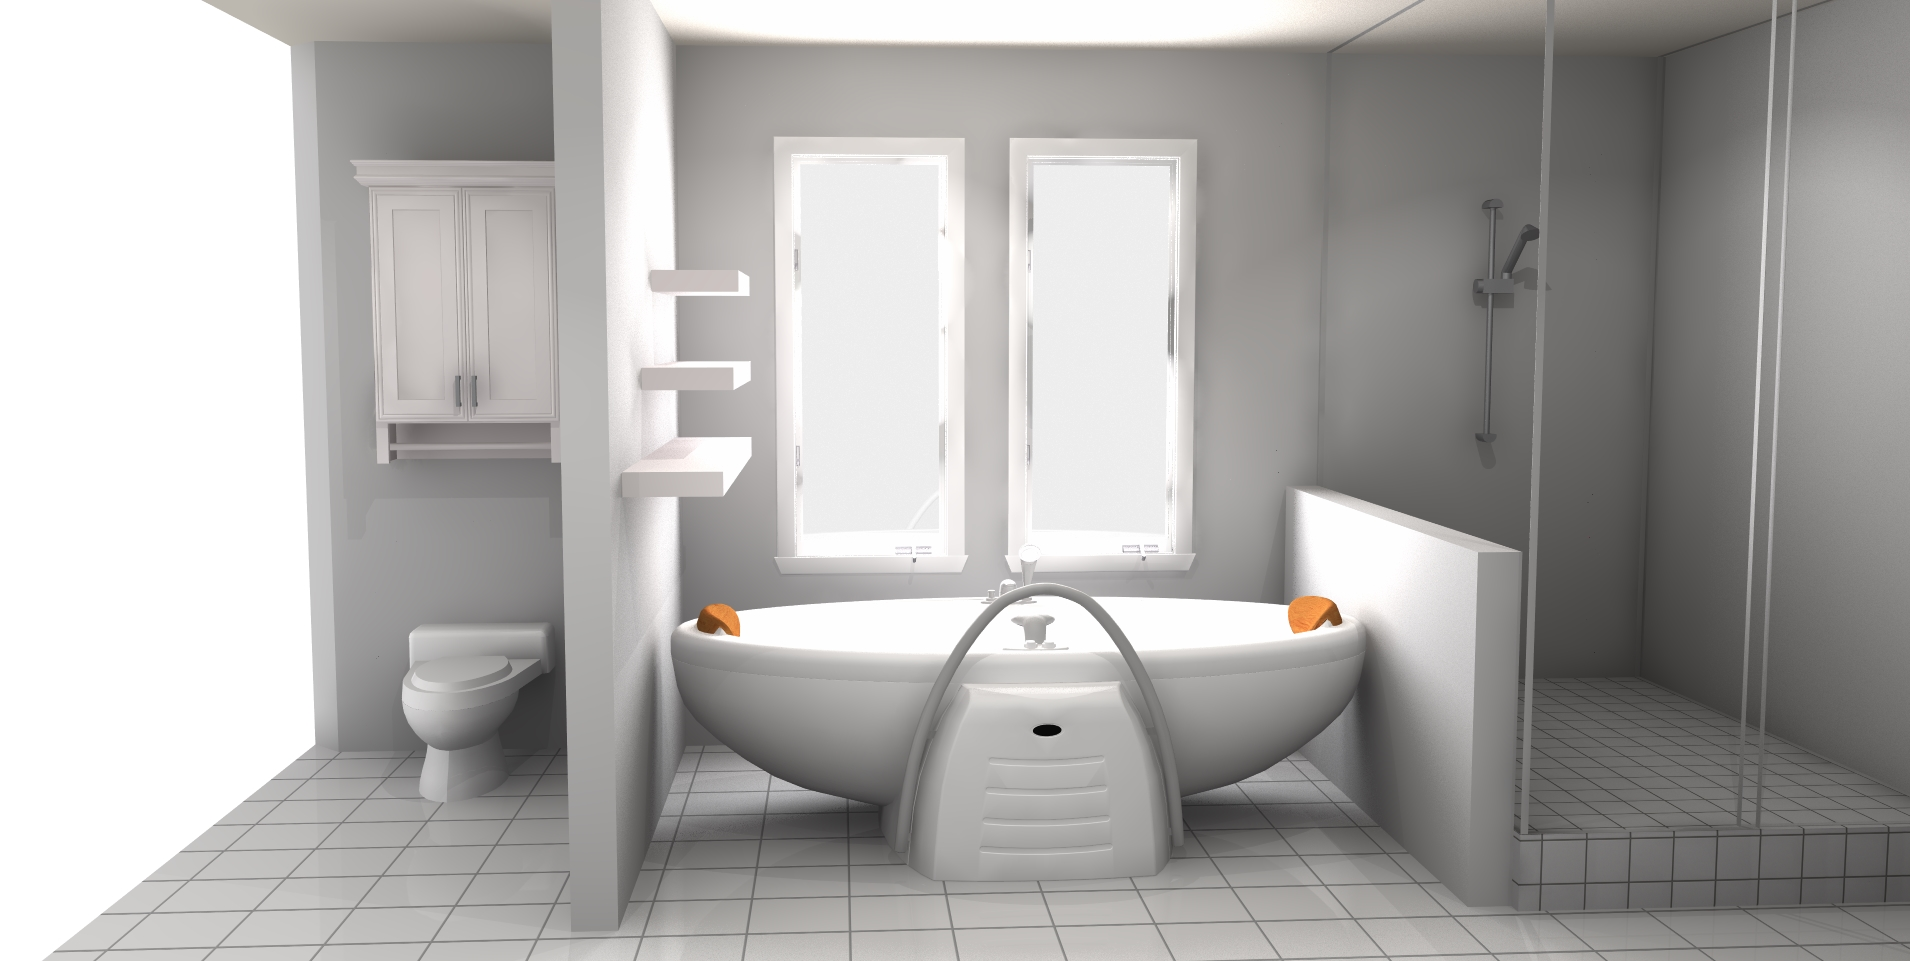 Bathroom Design 1